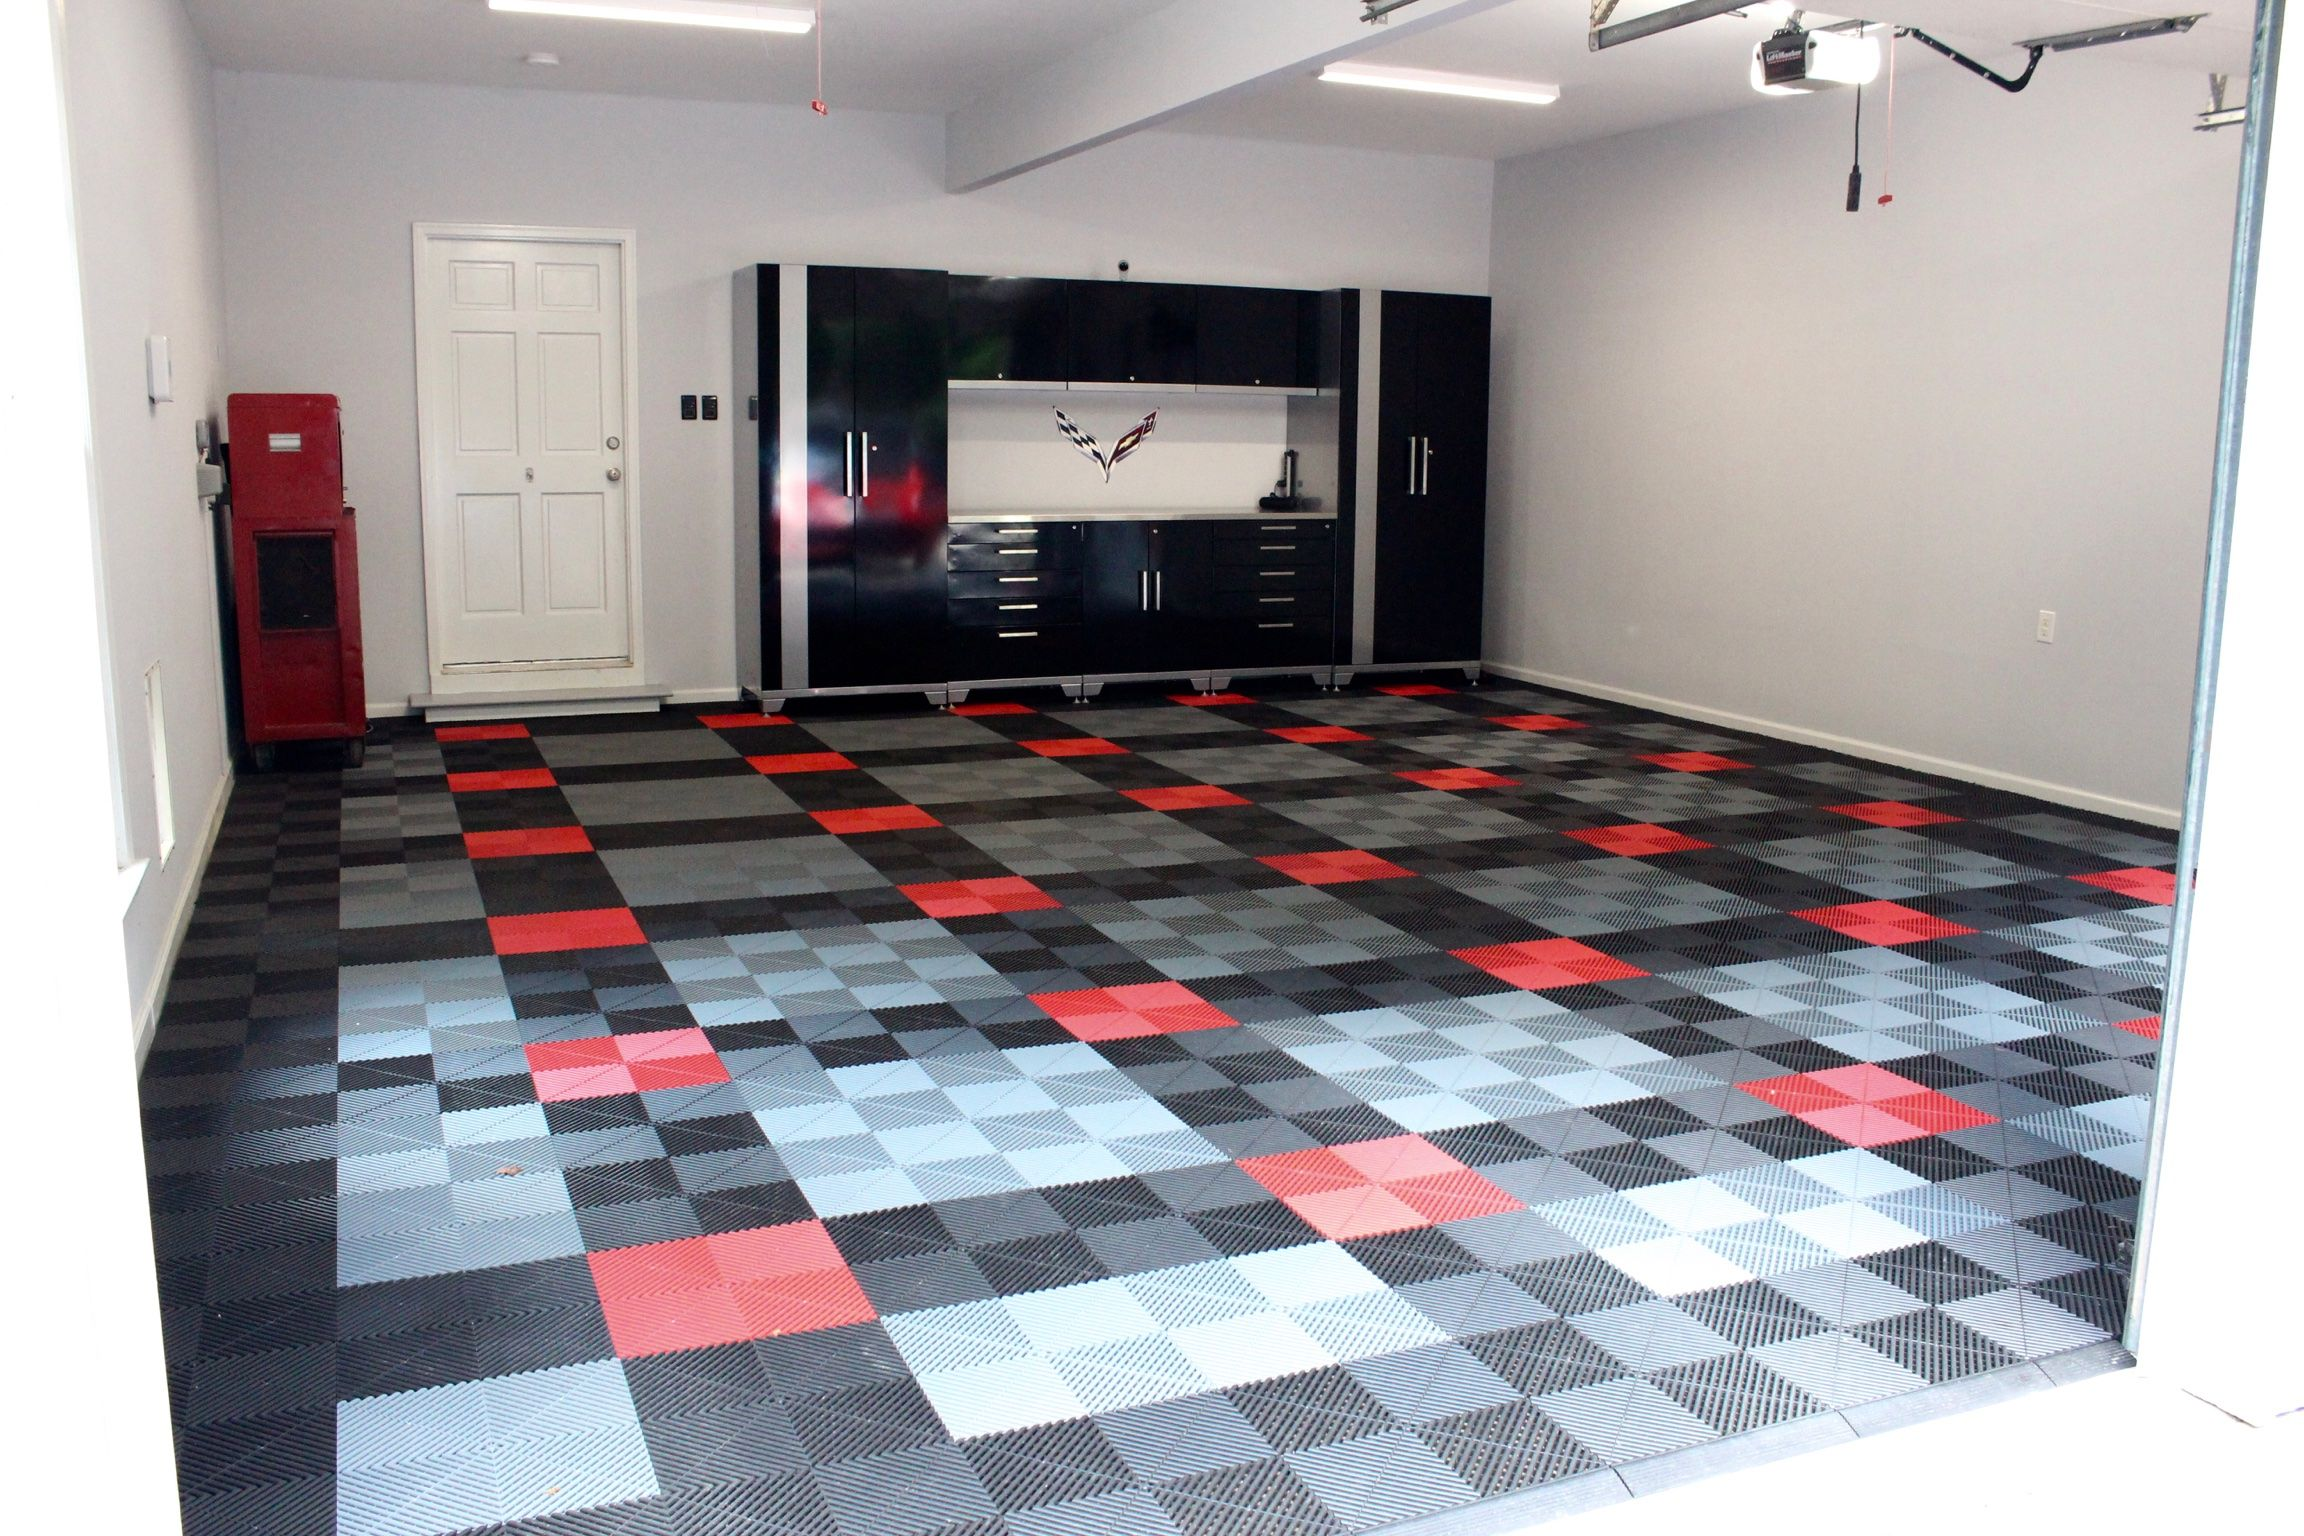 Pin By Jarrett Franz On Garage Garage Design Garage Floor Tiles